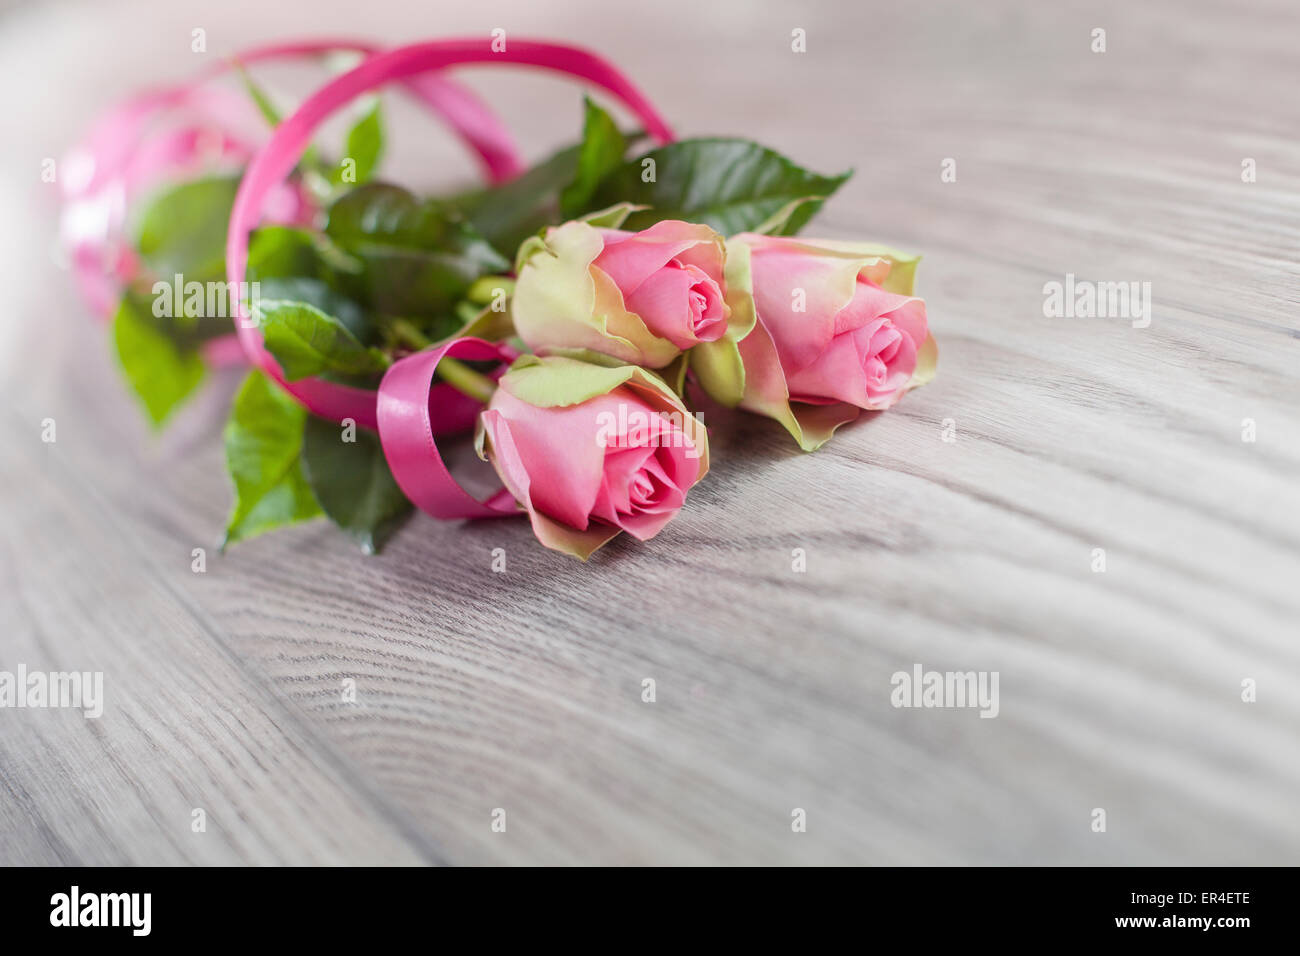 Pink roses on a wooden table - Stock Image